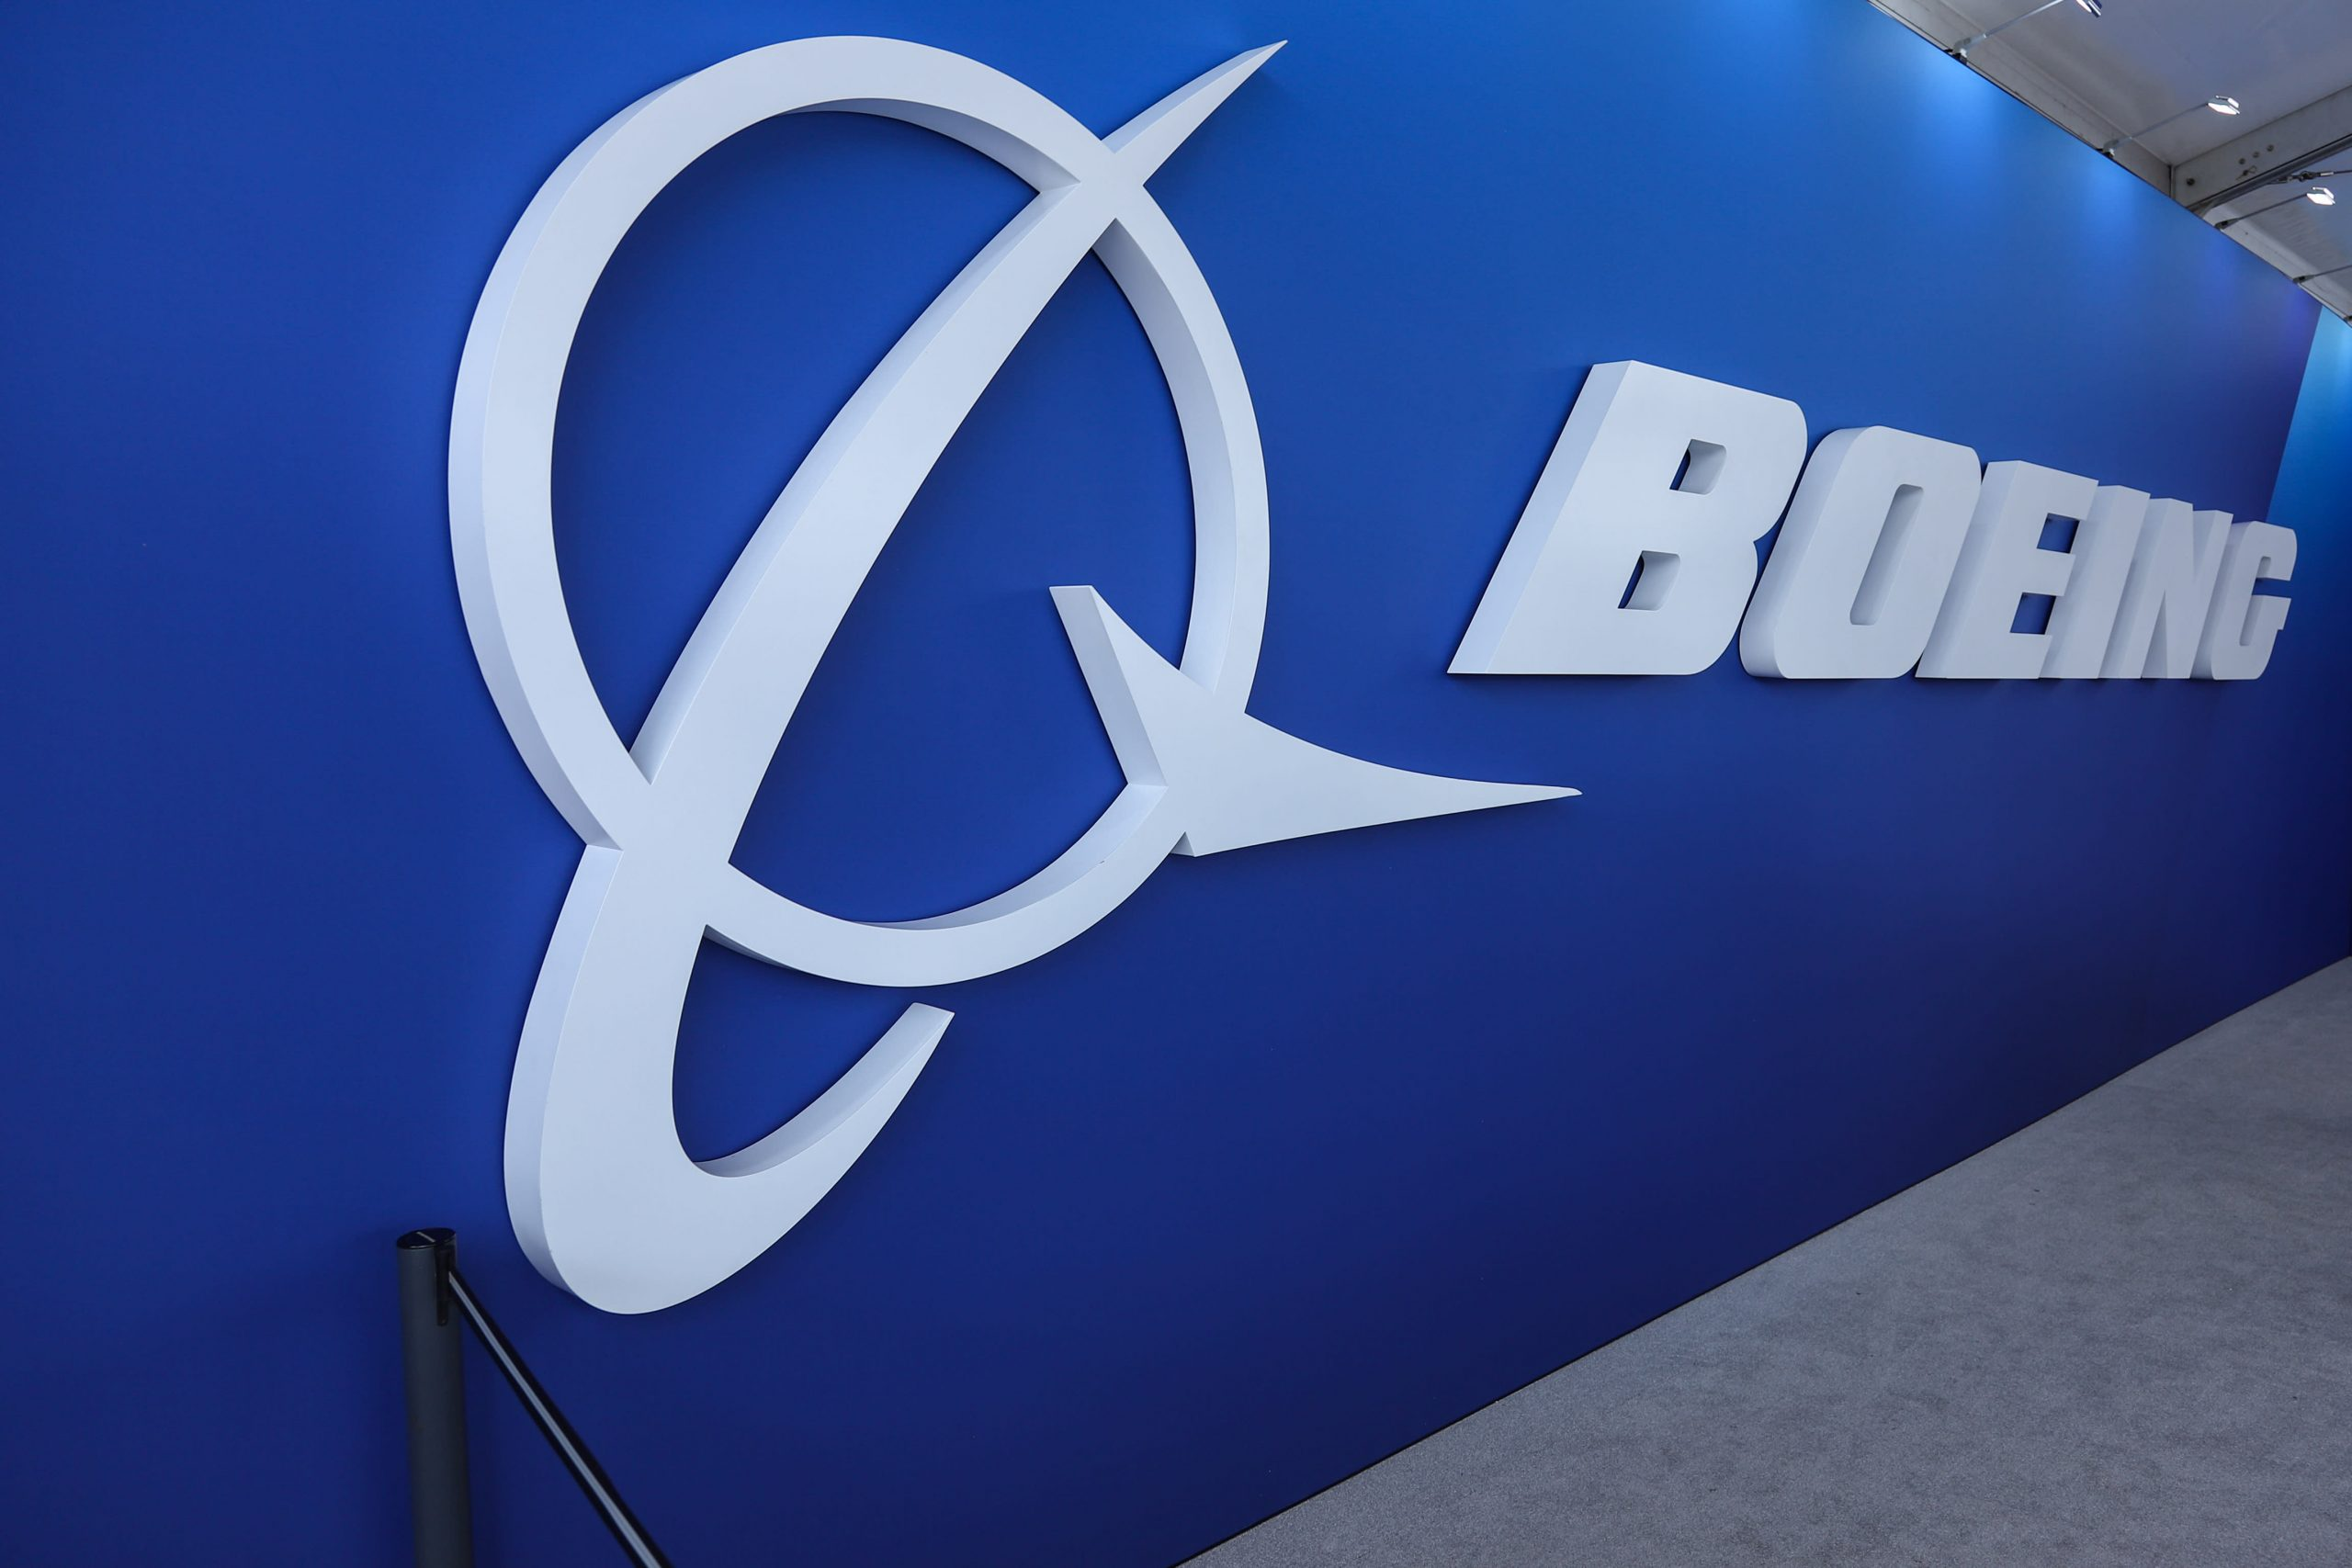 Jim Cramer sees upside in Boeing after stock took hit on 737 Max issue